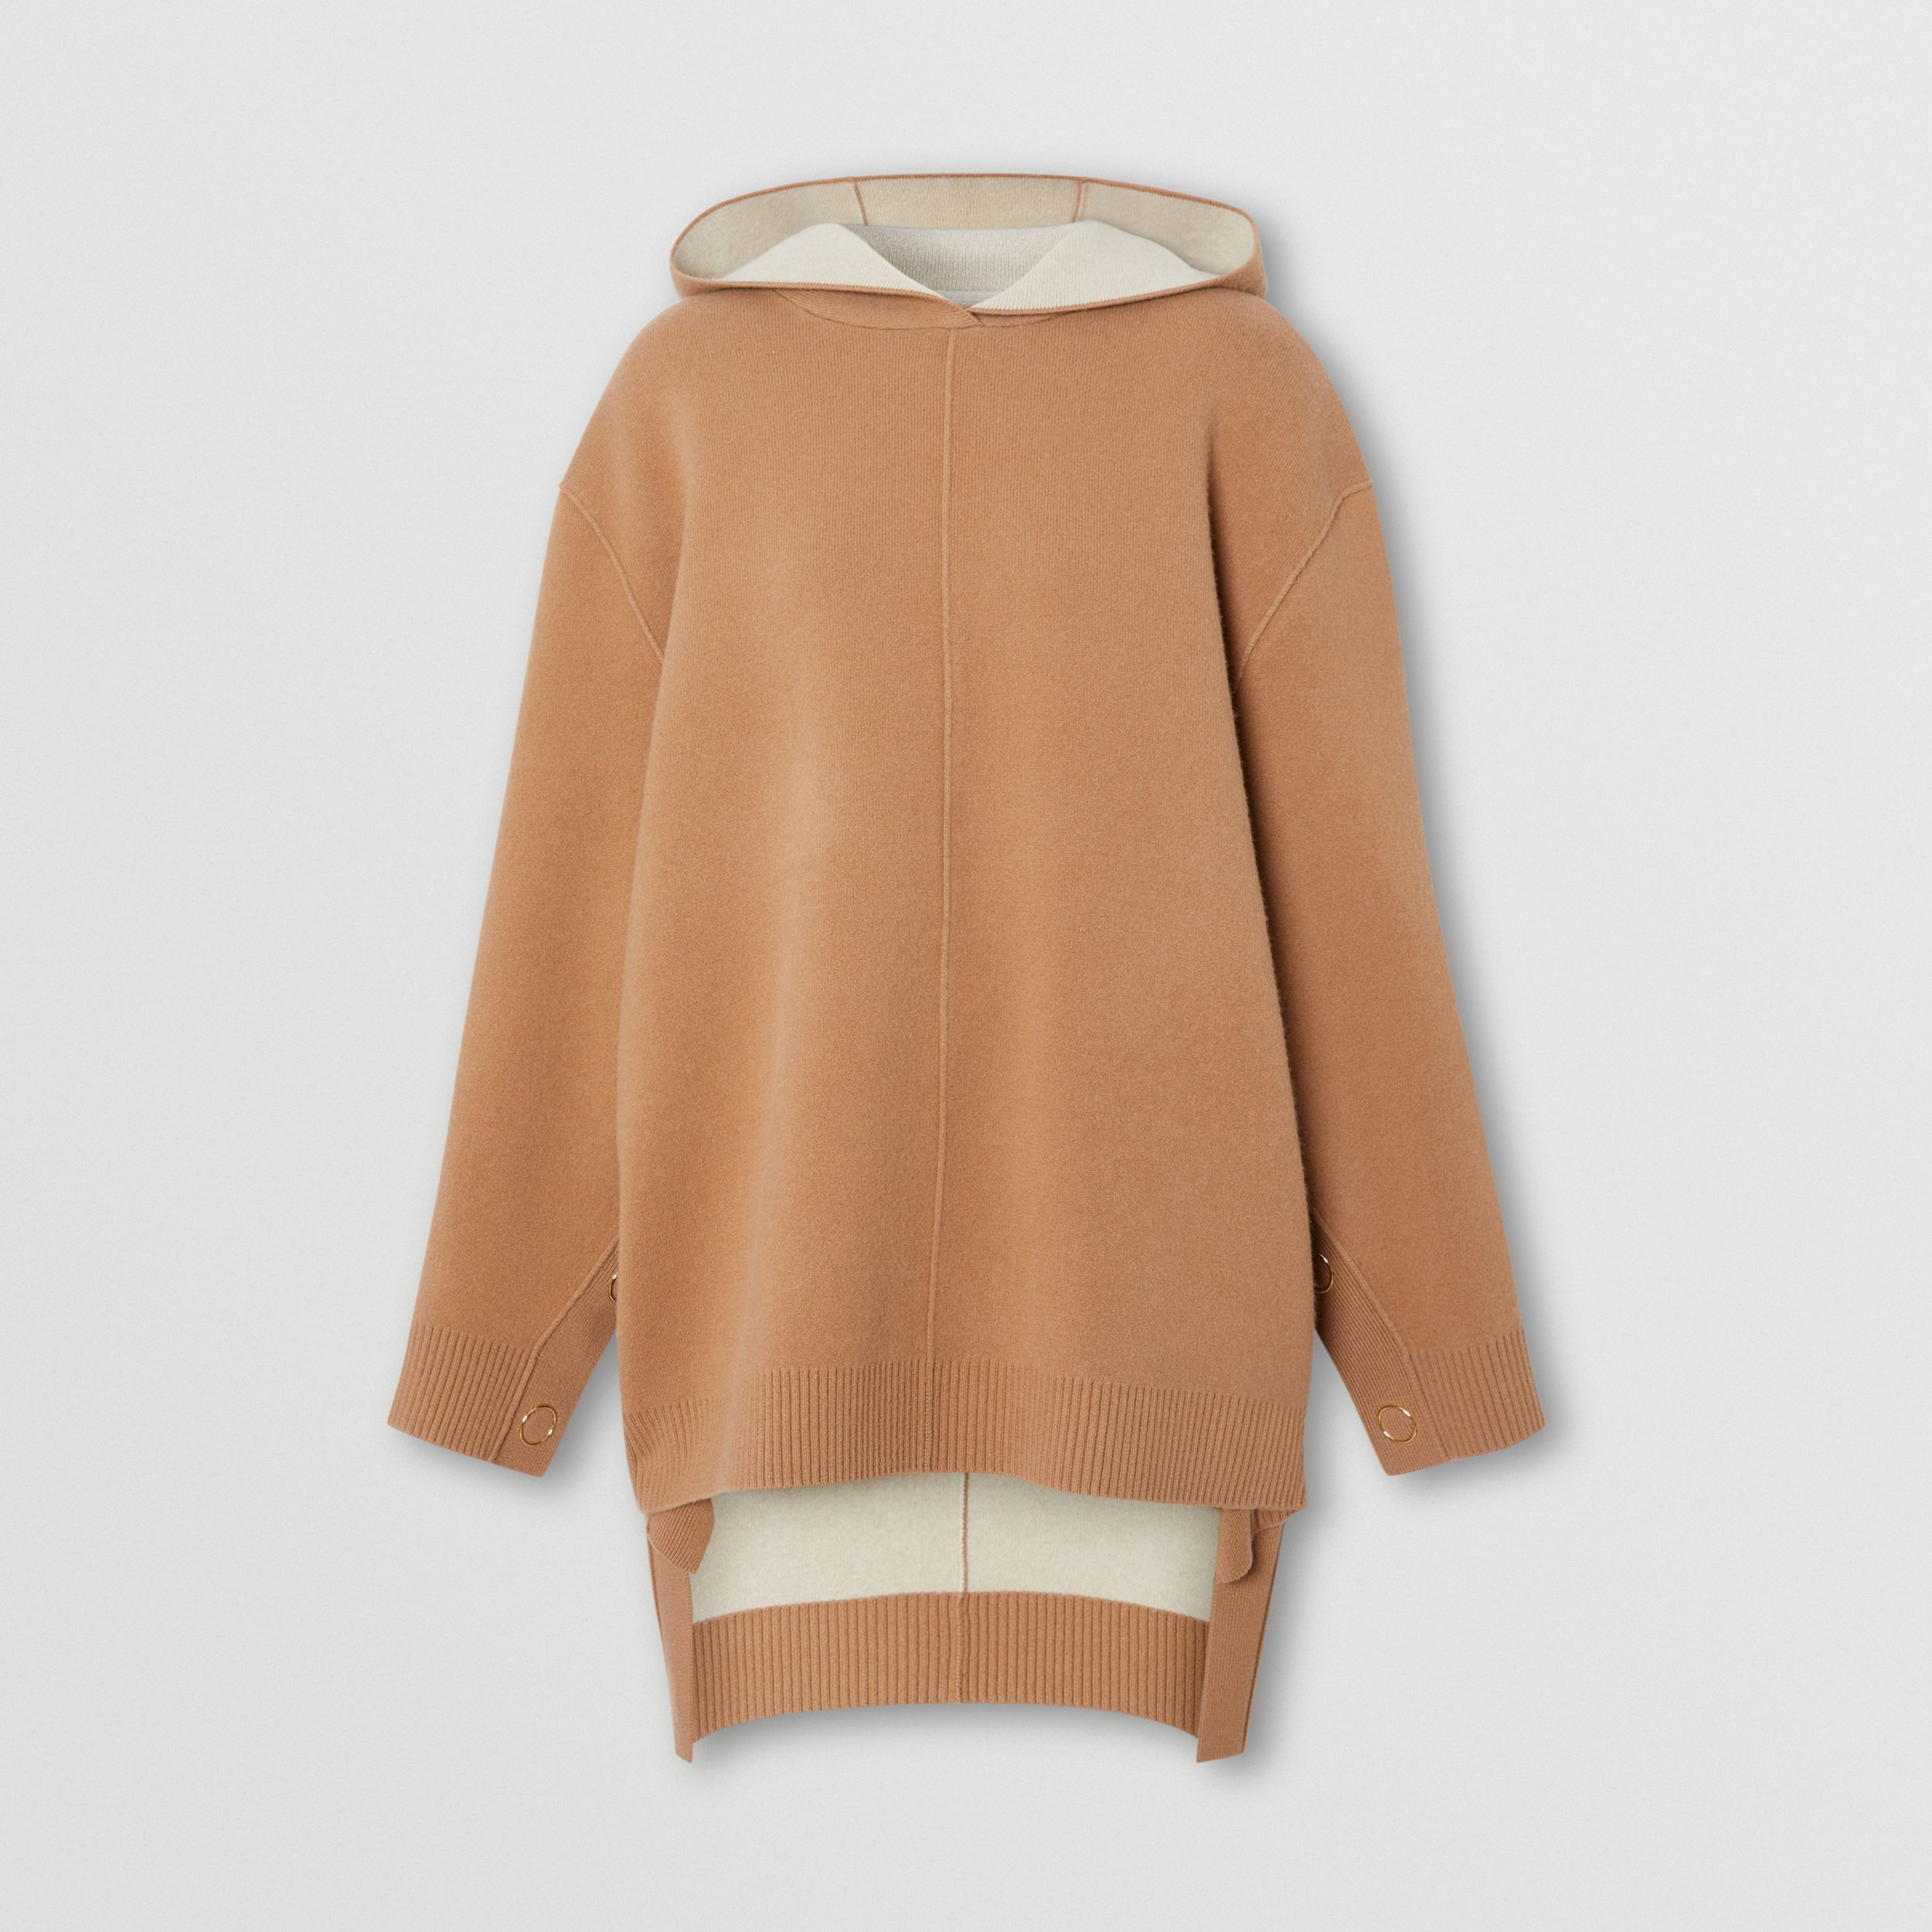 Double-faced Merino Wool Cashmere Blend Hoodie in Warm Camel - Women | Burberry - 4